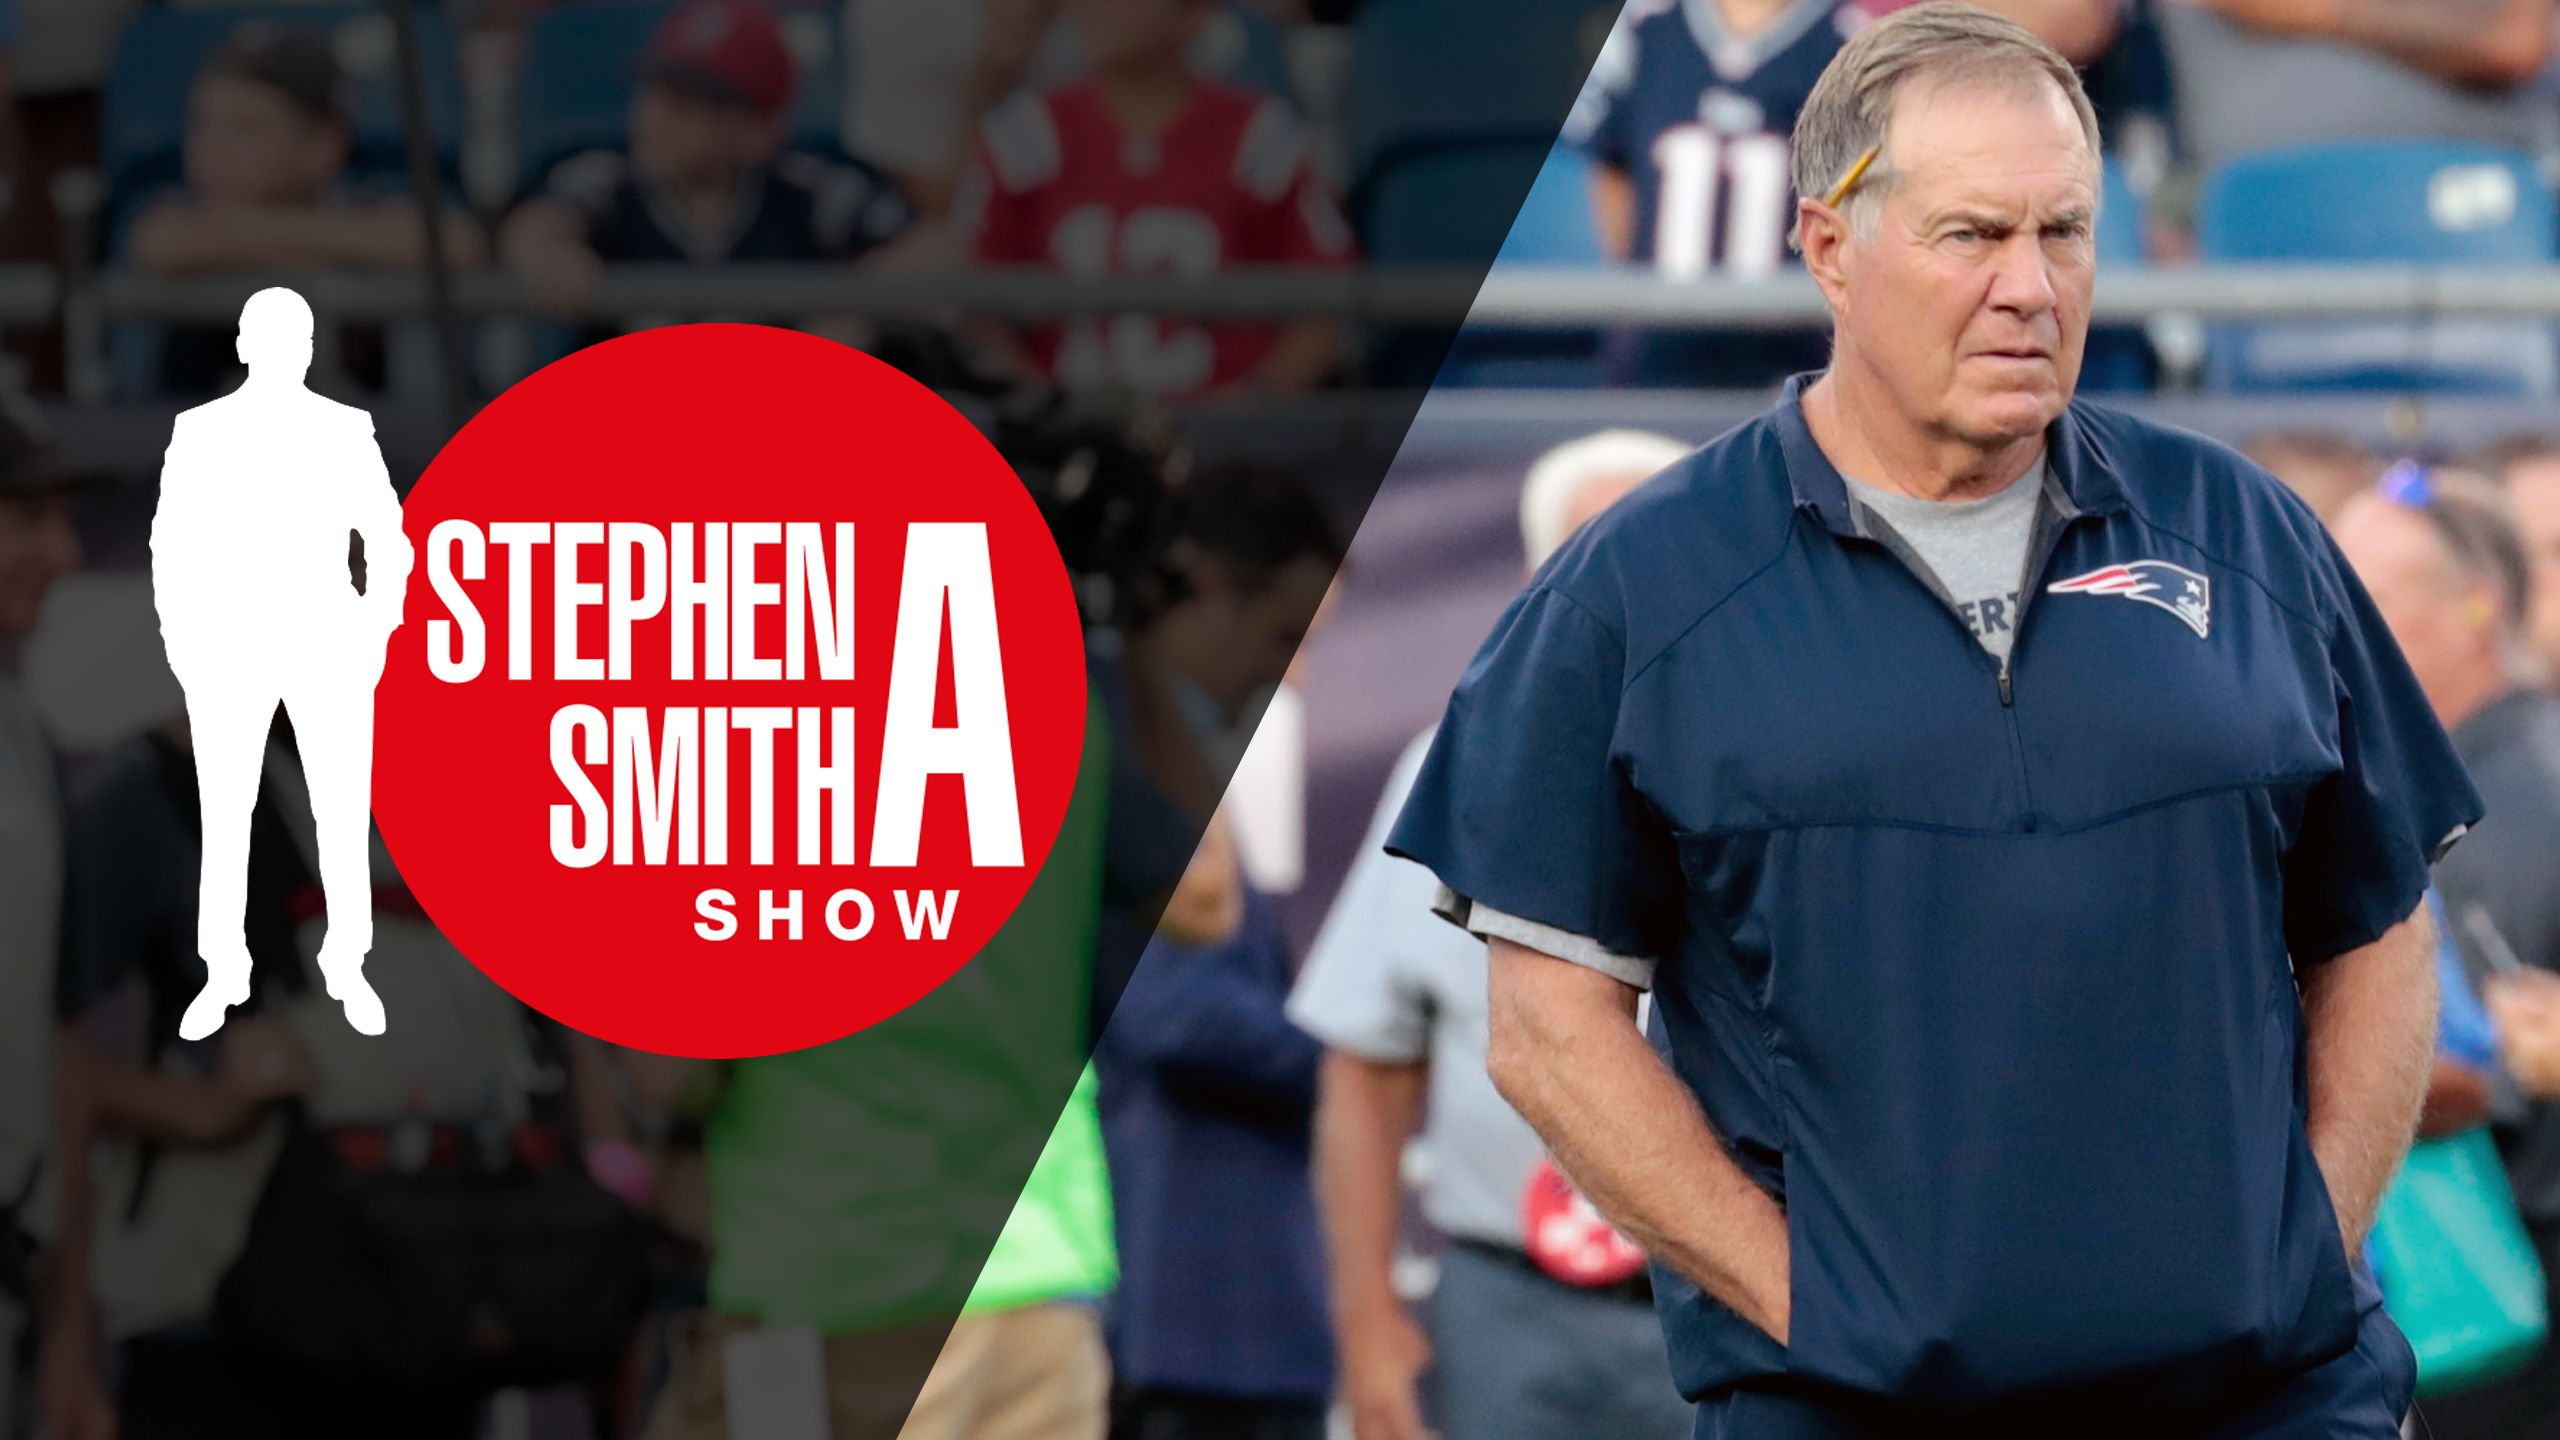 Wed, 8/15 - The Stephen A. Smith Show